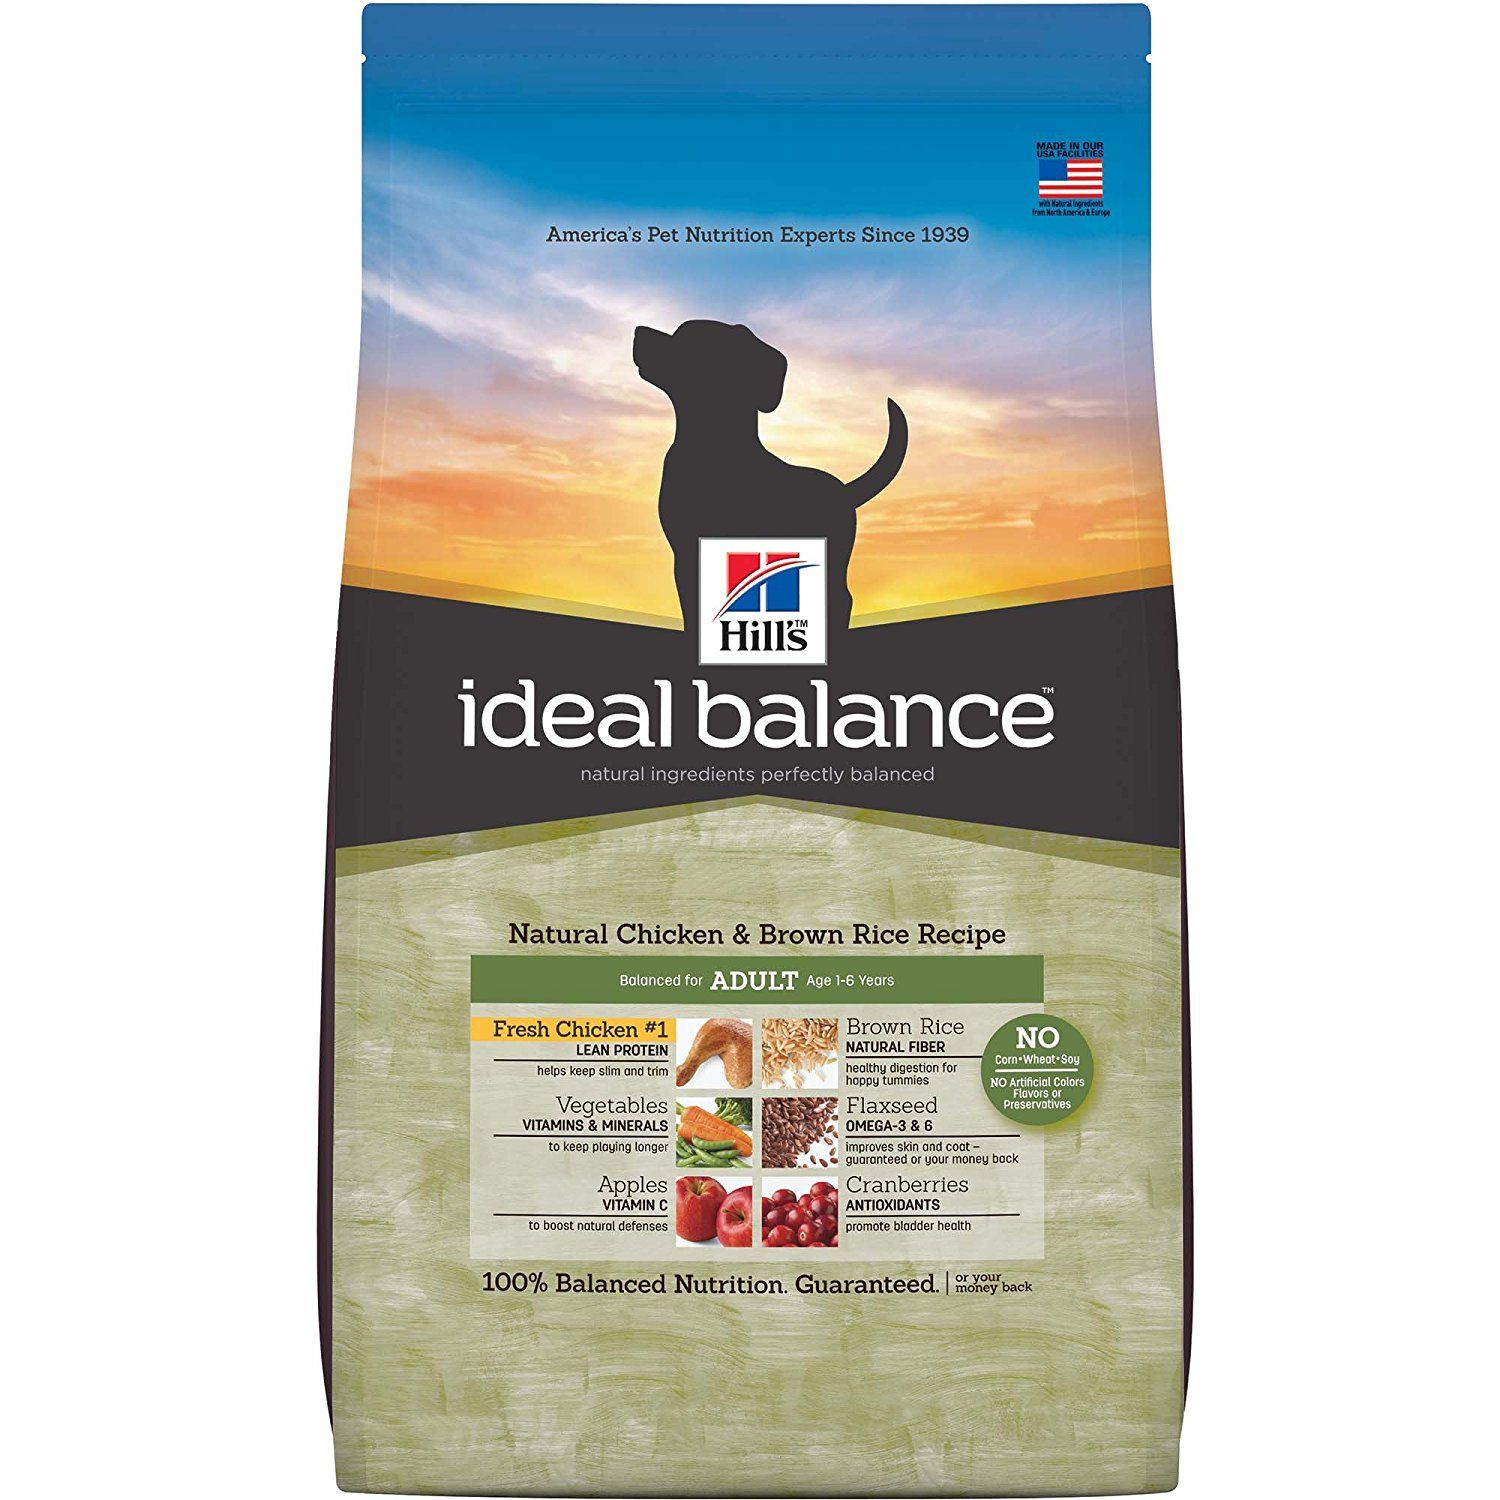 Ideal Balance Natural Chicken And Brown Rice Recipe Dry Dog Food Remarkable Product Available Now Bes Dog Food Recipes Grain Free Dog Food Natural Chicken